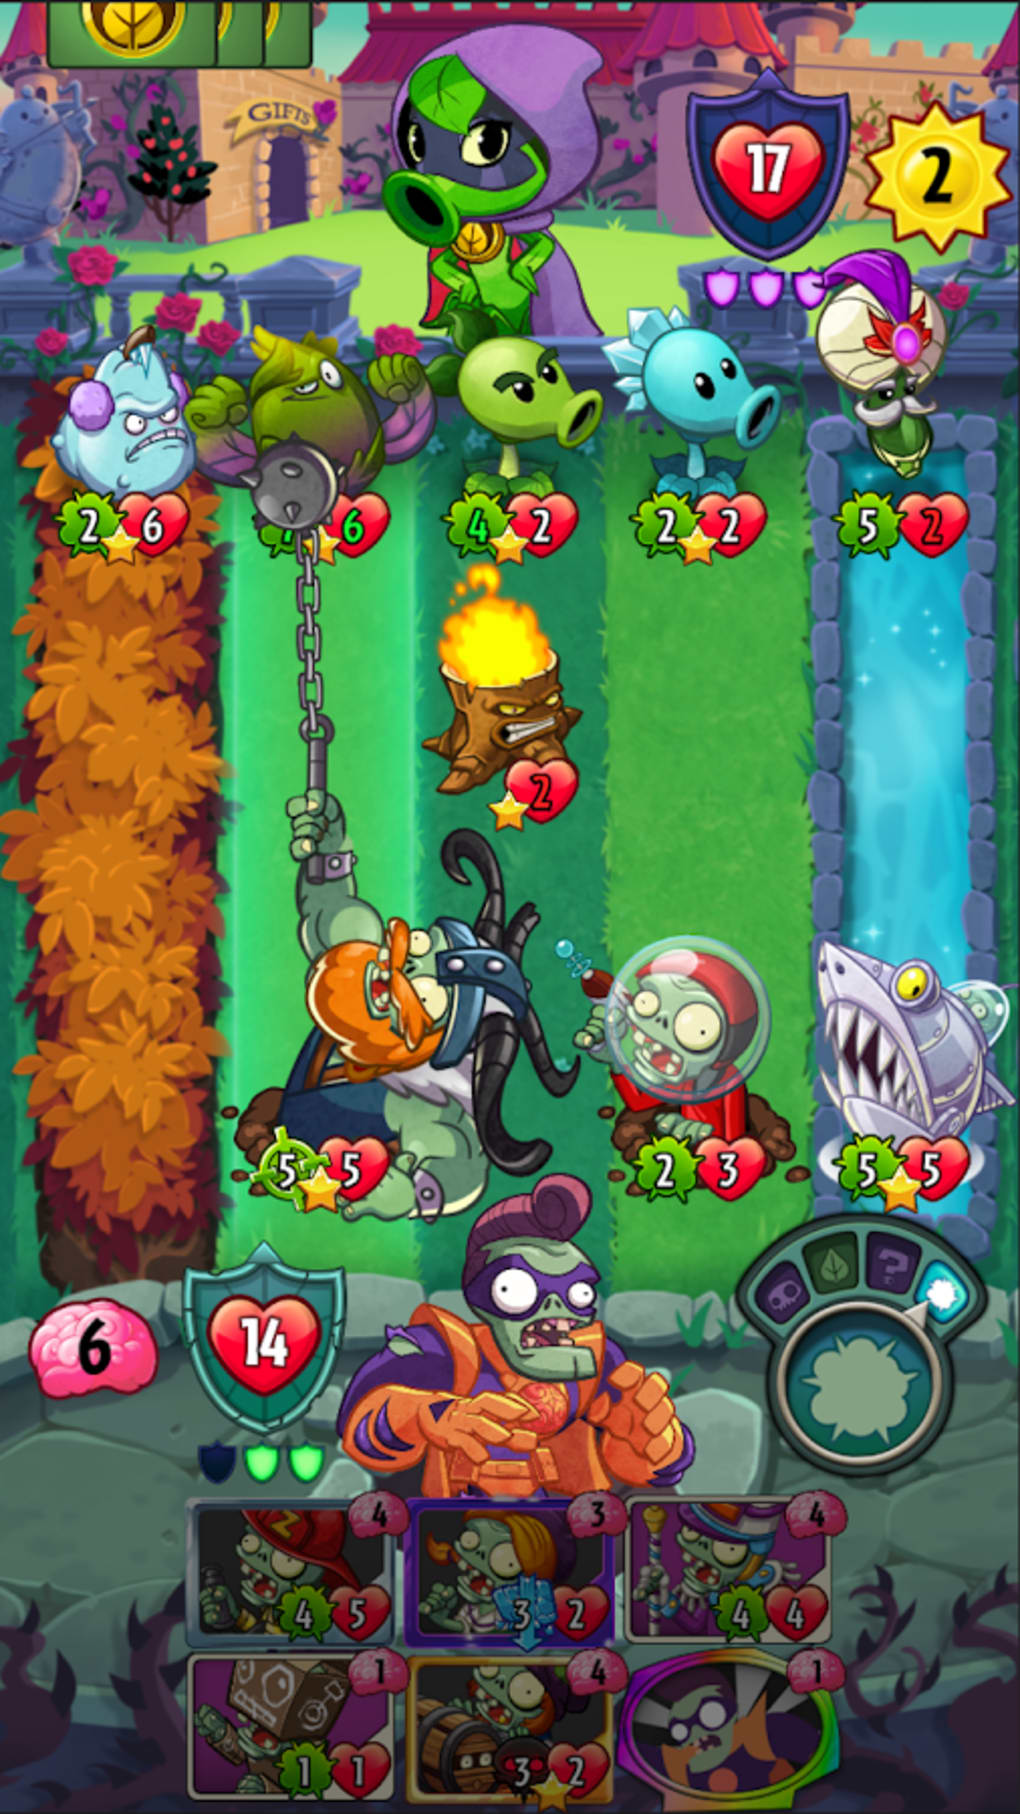 Plants vs. Zombies 2 8.3.1 - Download for PC Free